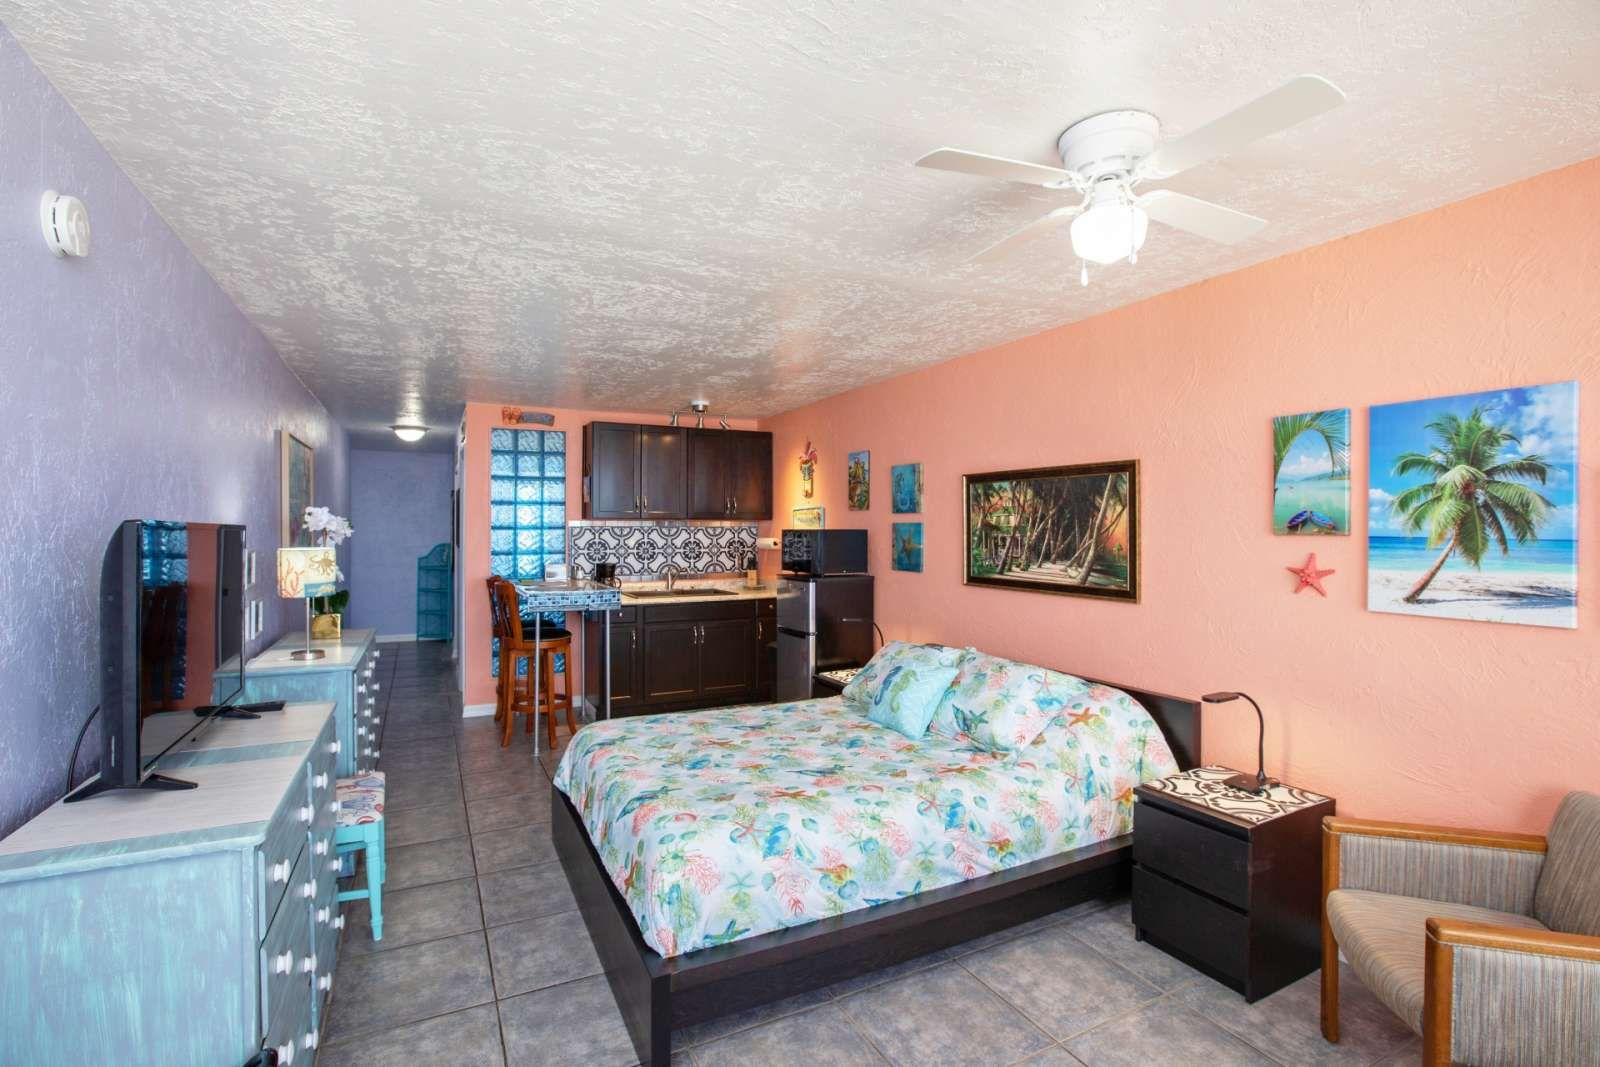 Daytona Beach Shores Vacation Rental Exciting Couples Getaway In Direct Ocean Front Newly Updated 5th Floo Daytona Beach Shores House Rental Daytona Beach